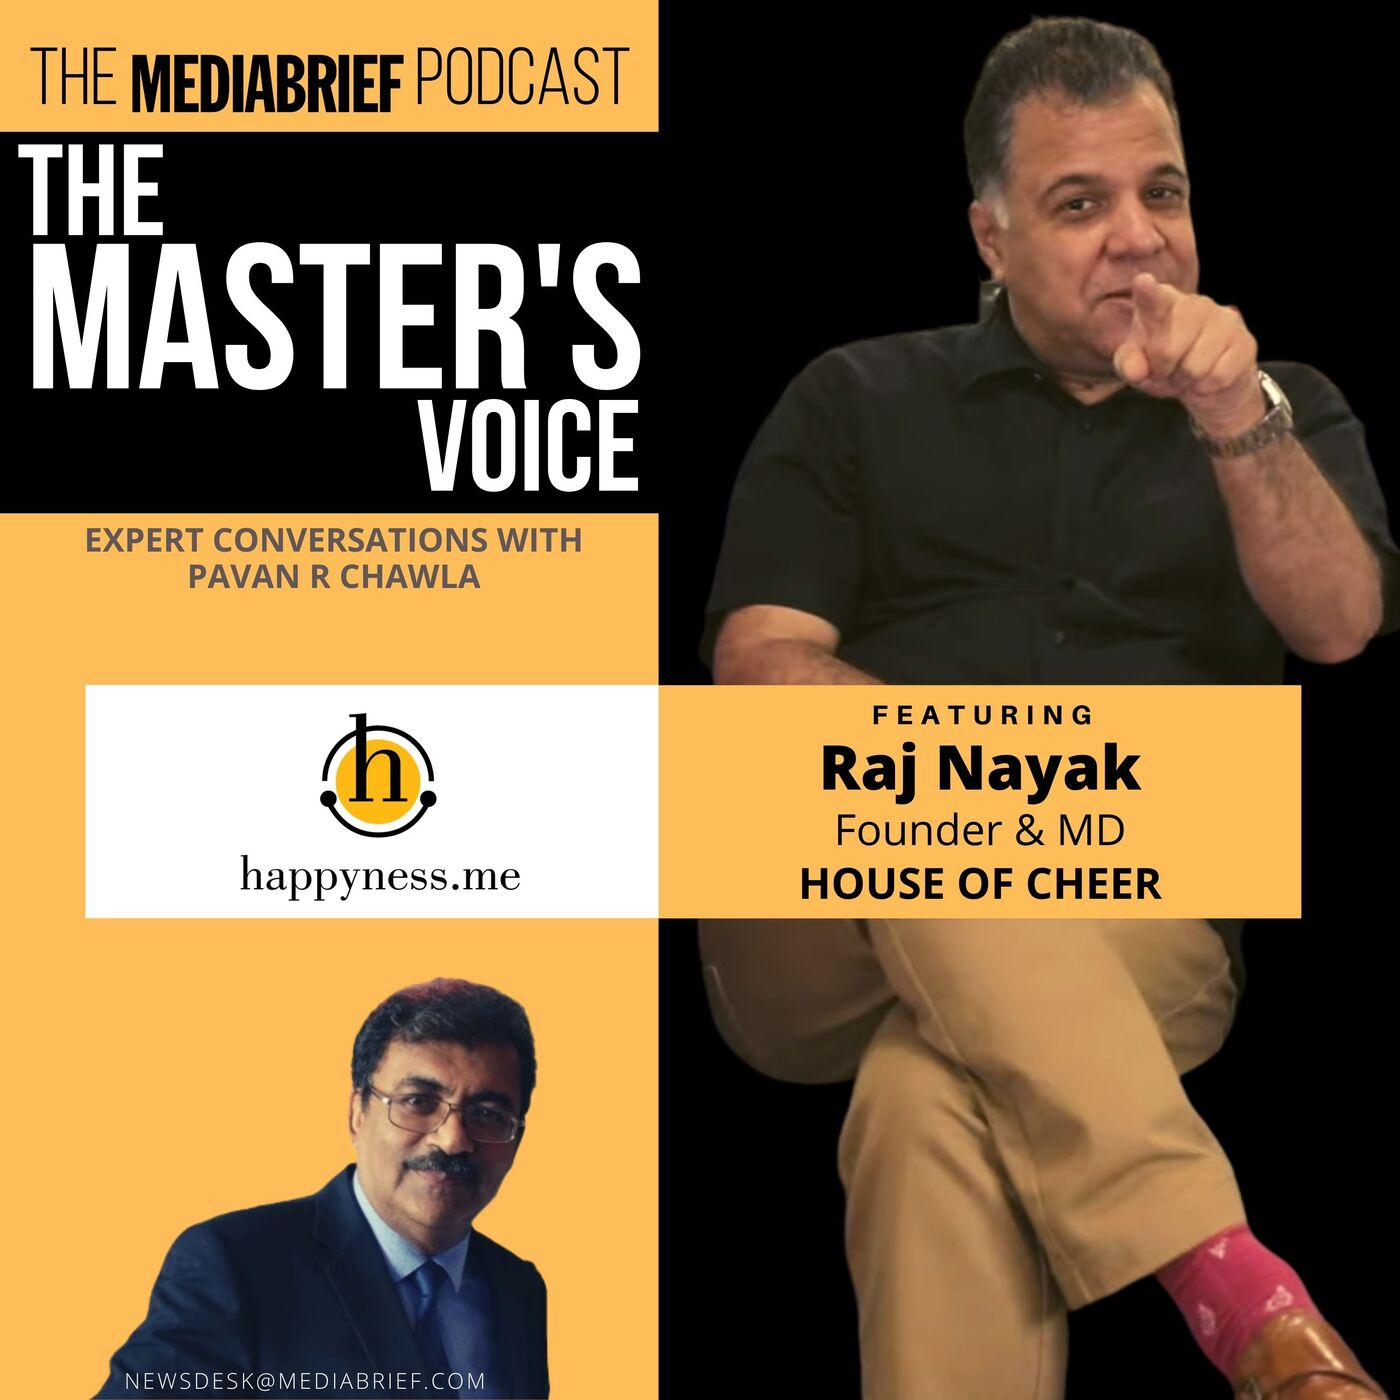 EXCLUSIVE PODCAST | Raj Nayak of House Of Cheer on the 'H' Factor and more